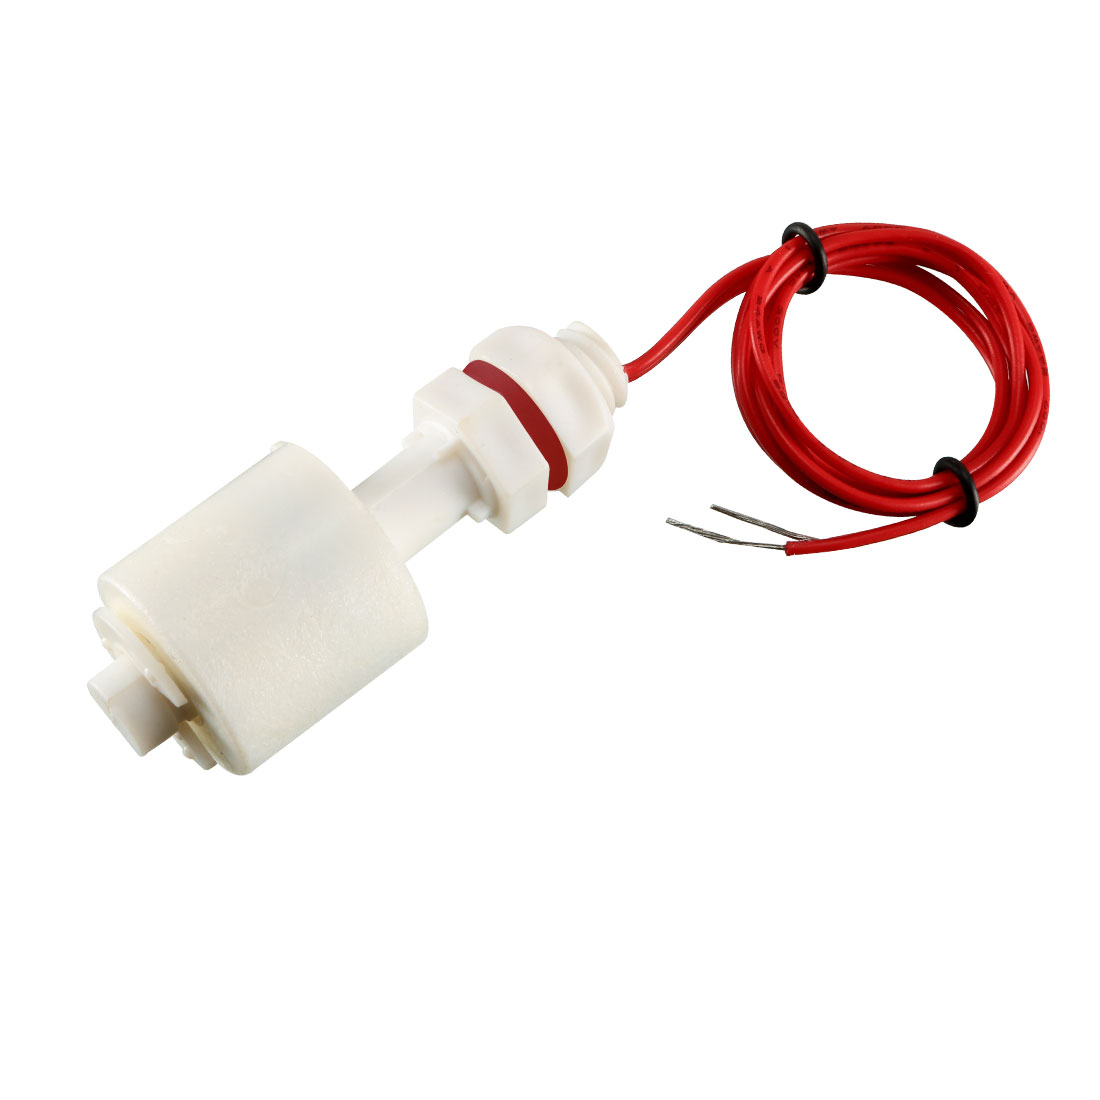 5Pcs ZP4510 White Plastic Liquid Water Level Sensor Float Floating Switch